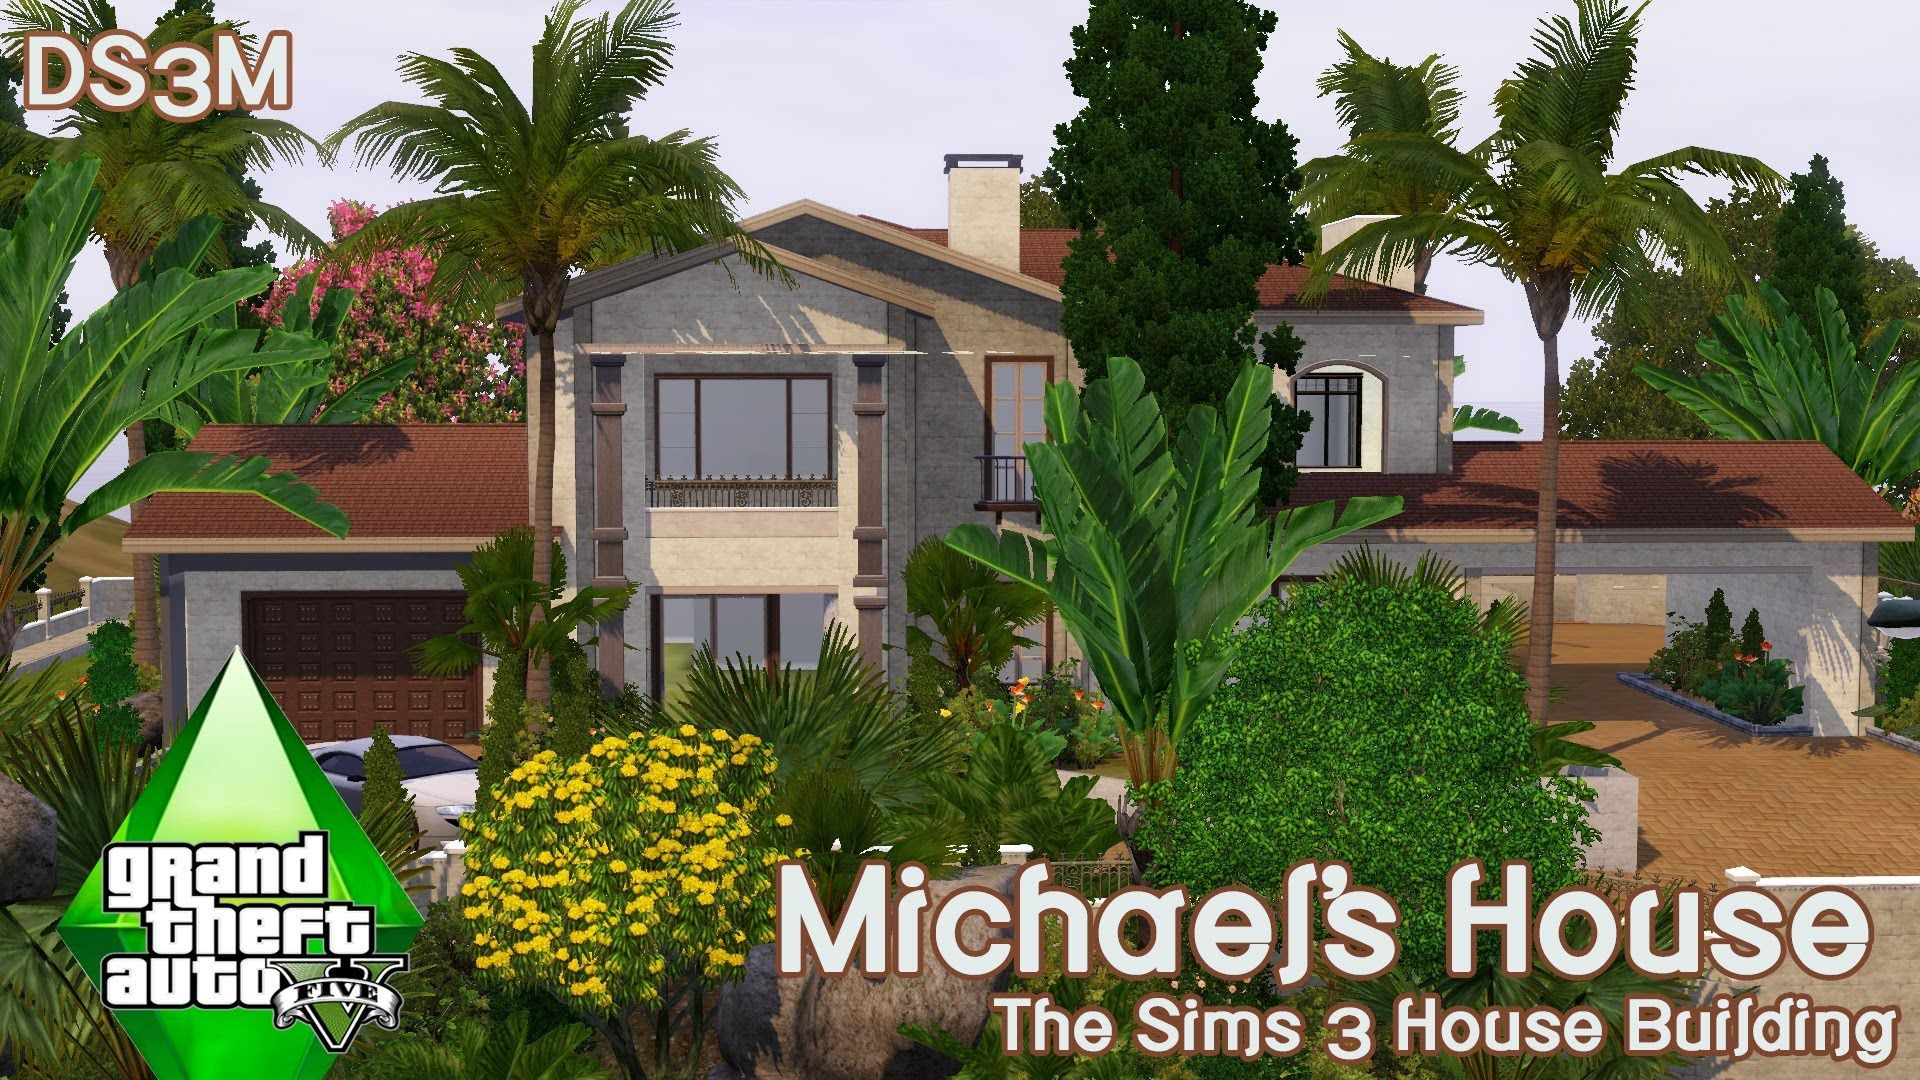 The Sims 3 House Building Michael S House Gta V Franklin Homes